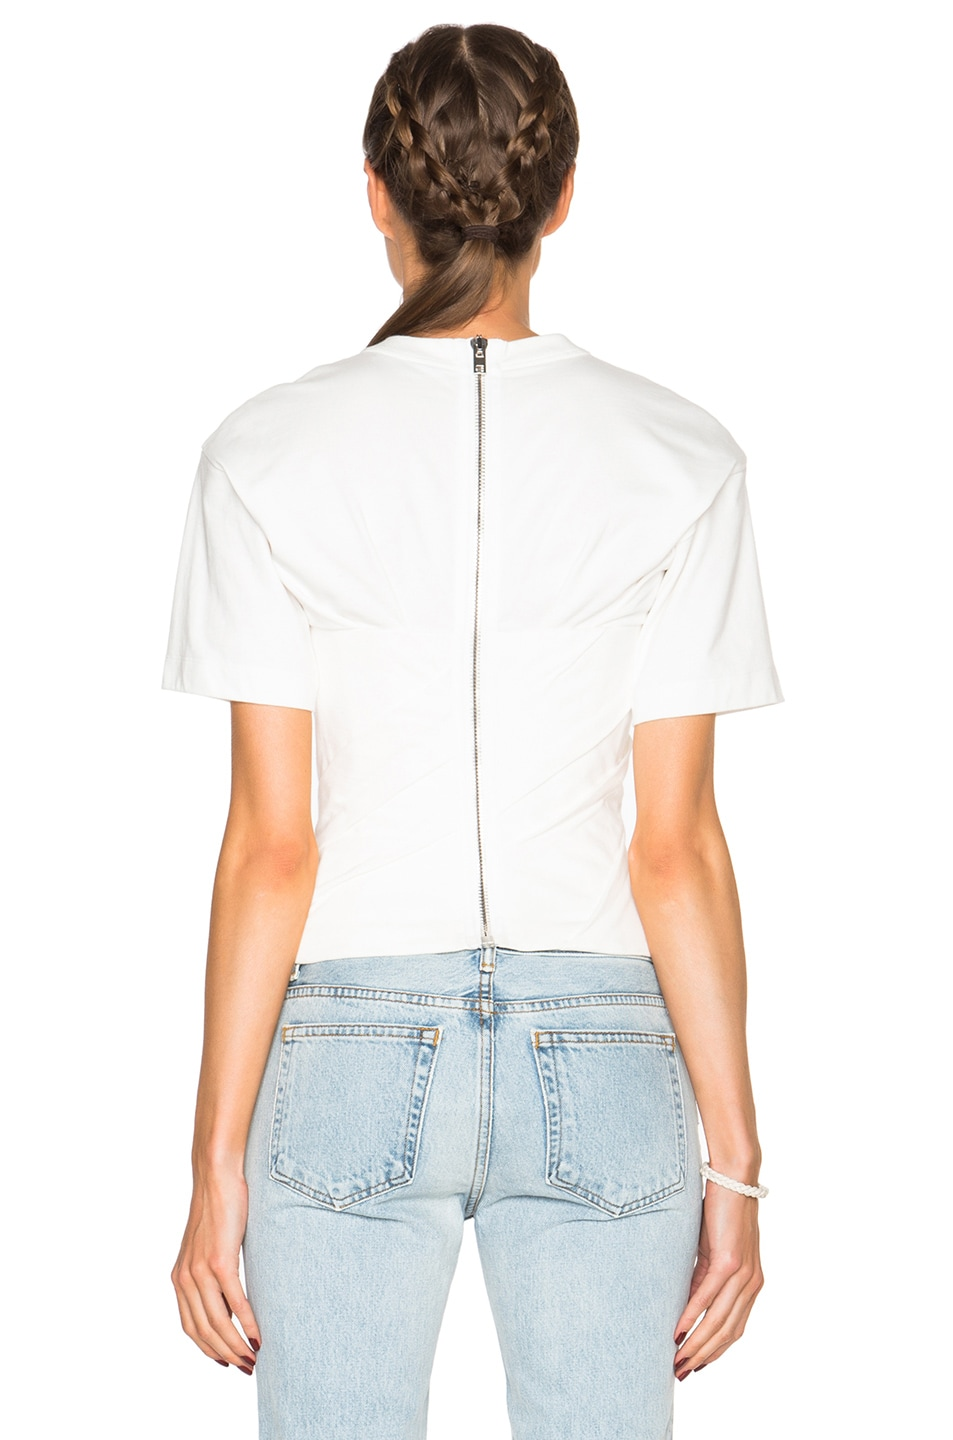 Image 4 of Alexander Wang Draped Bustier Tee in Silica